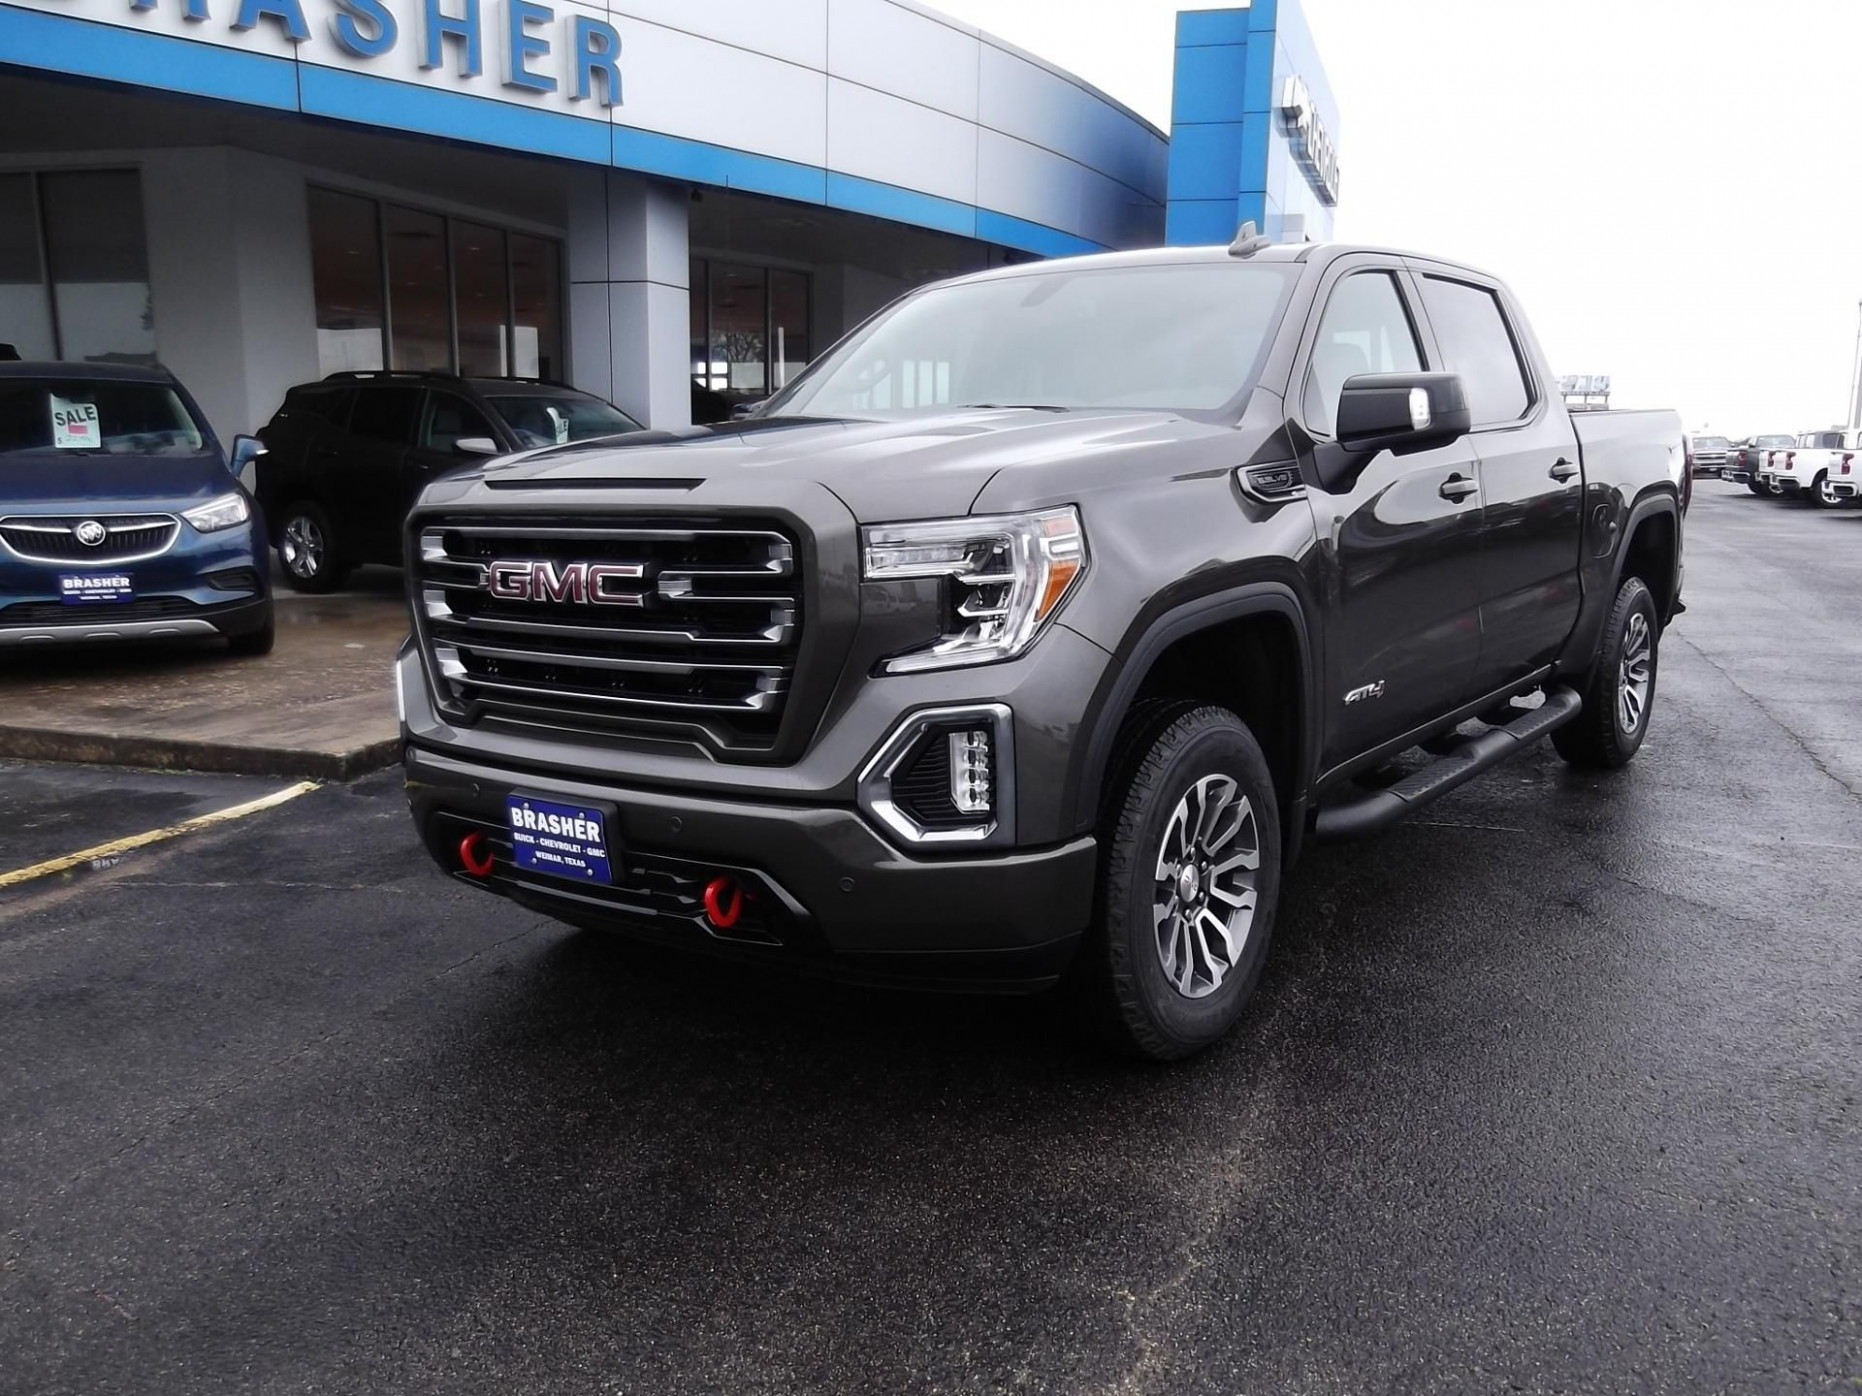 8 GMC smokey quartz metallic Interior 8*8 - 8 GMC smokey ...